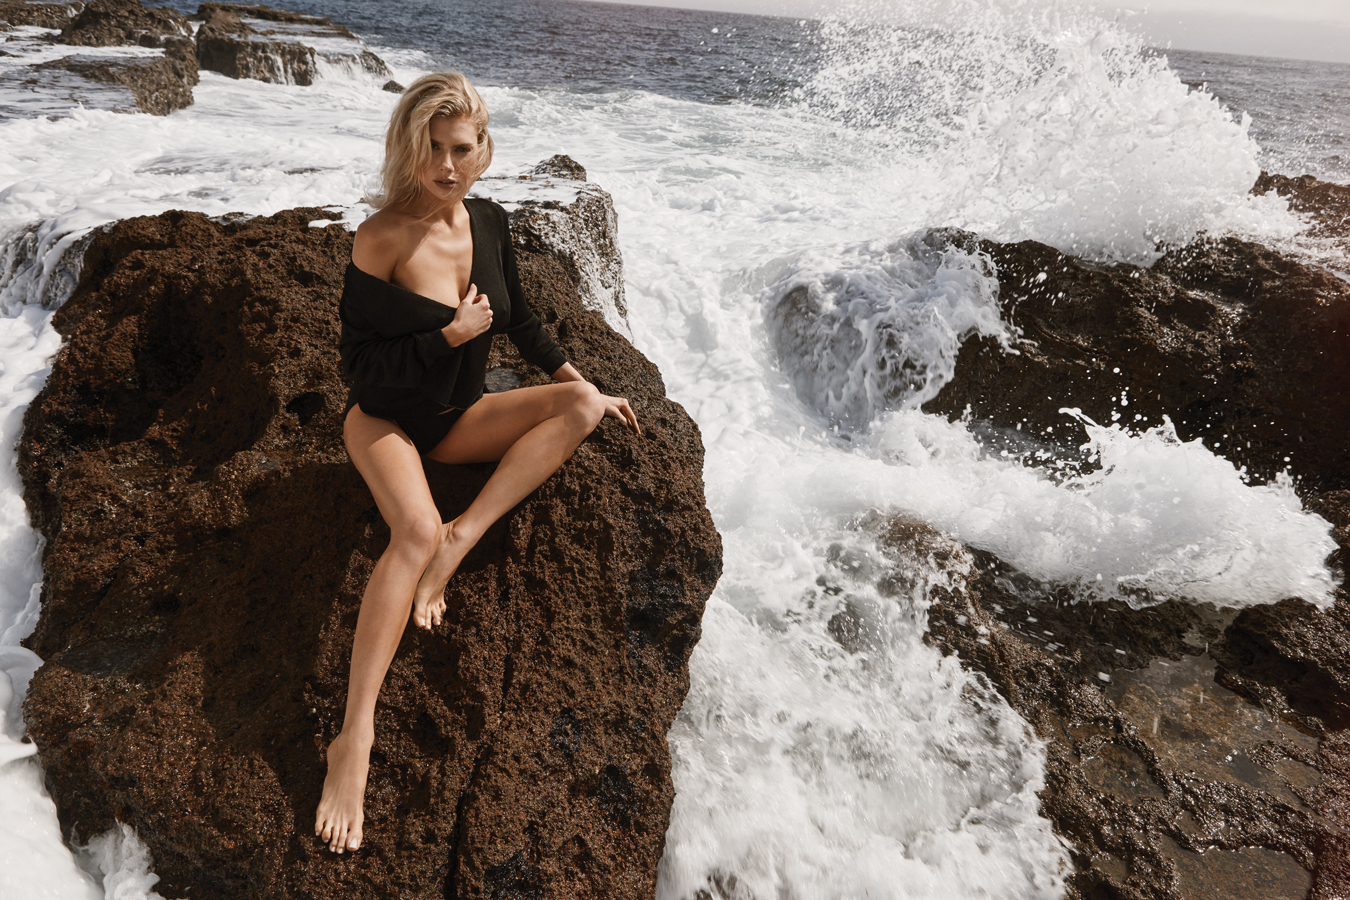 Charlotte McKinney Modeling By The Sea - Charlotte McKinney Modeling By The Sea